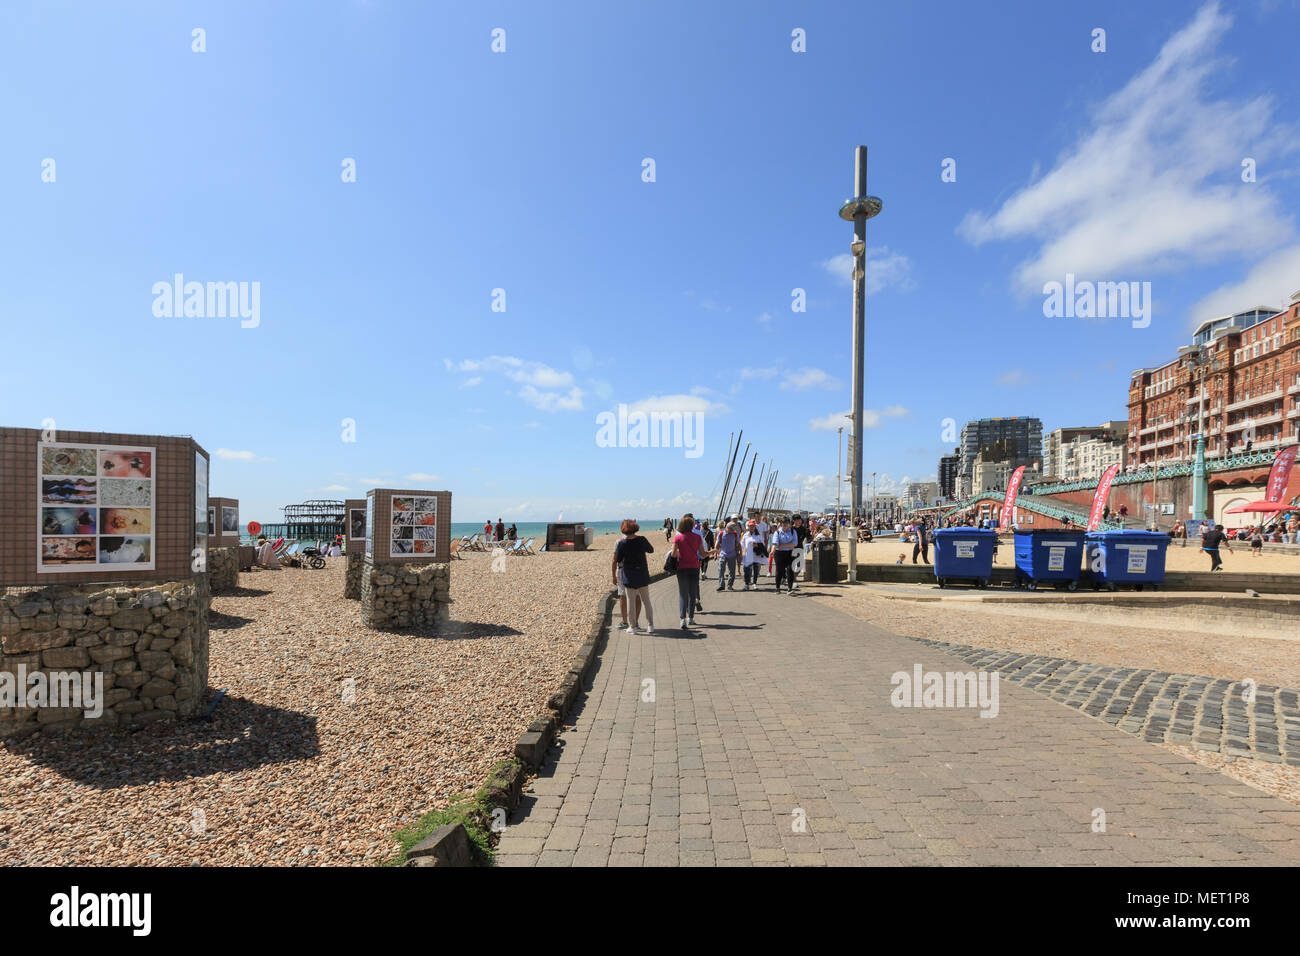 People admire walking on Brighton costline, view of English channel, tower i360 - Stock Image